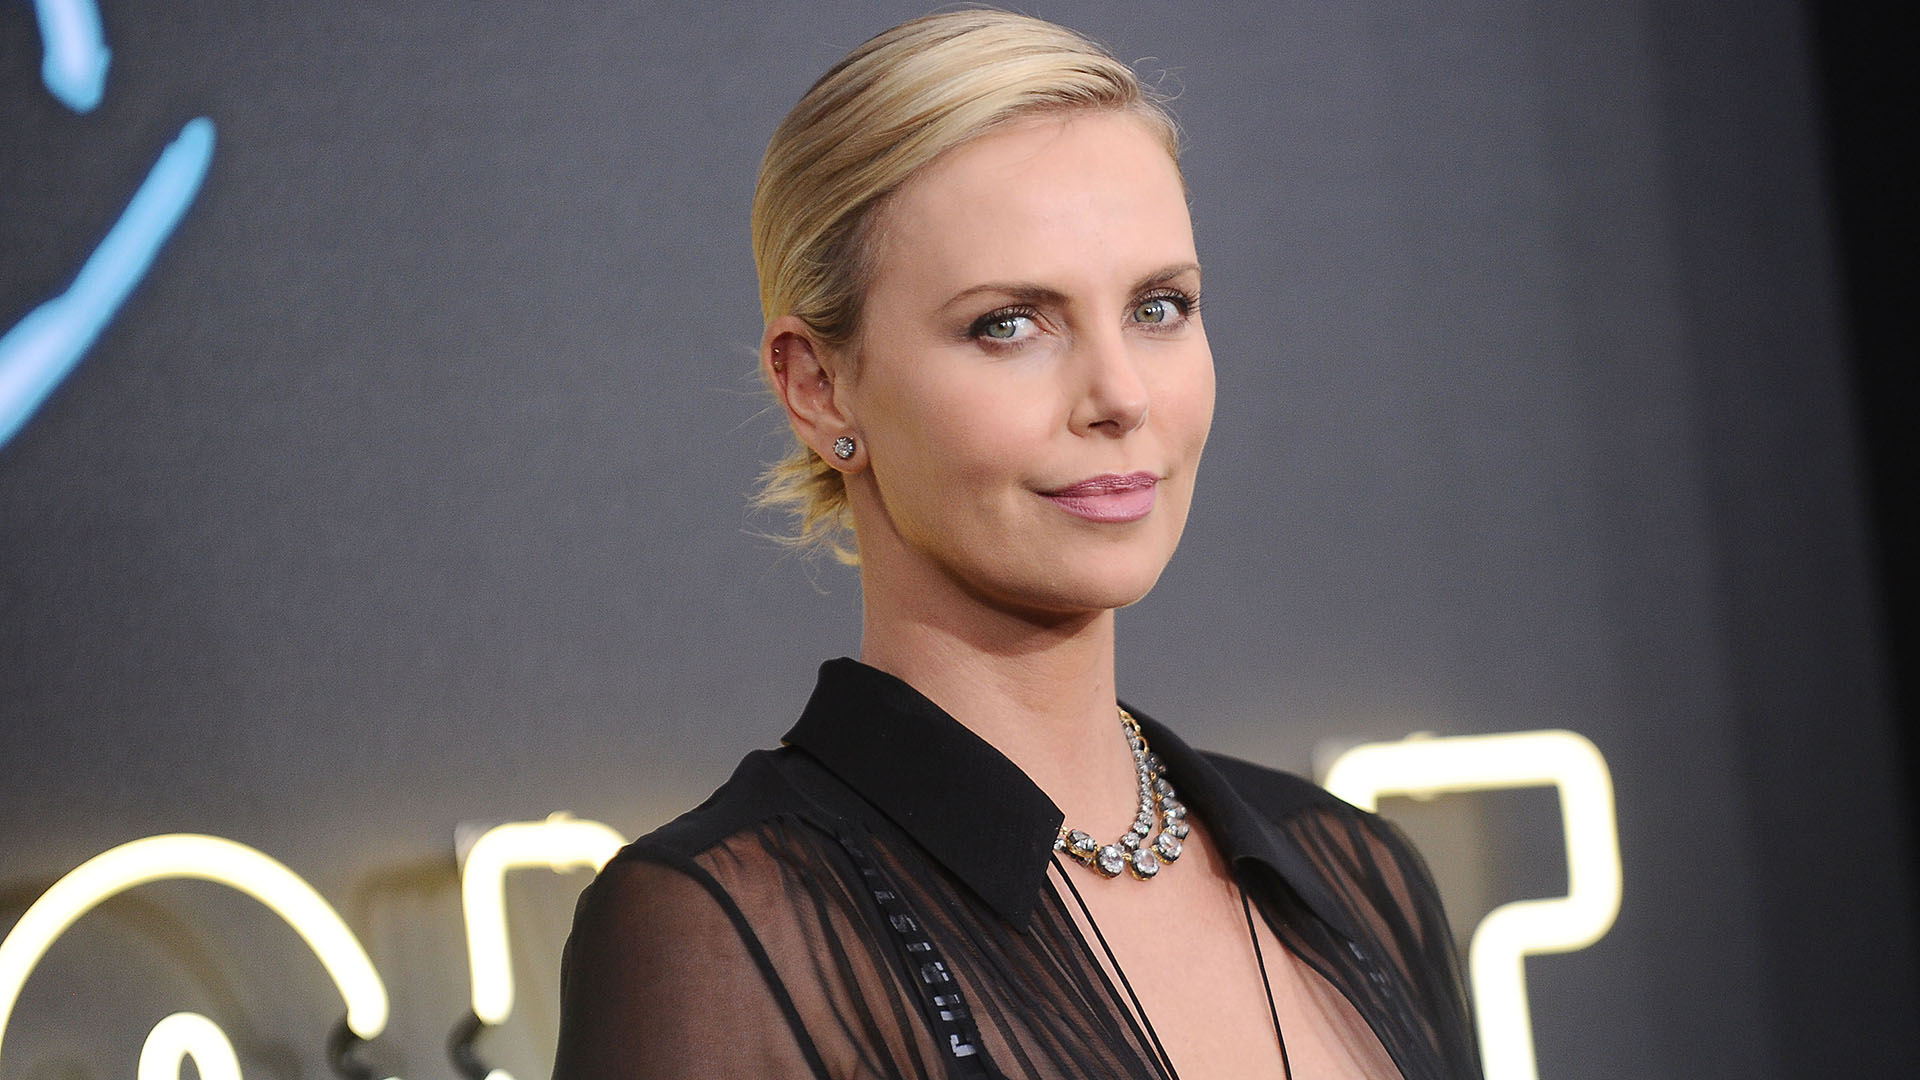 Charlize Theron Is Officially Back to Smoking Weed, and Her Mom Is Her Supplier